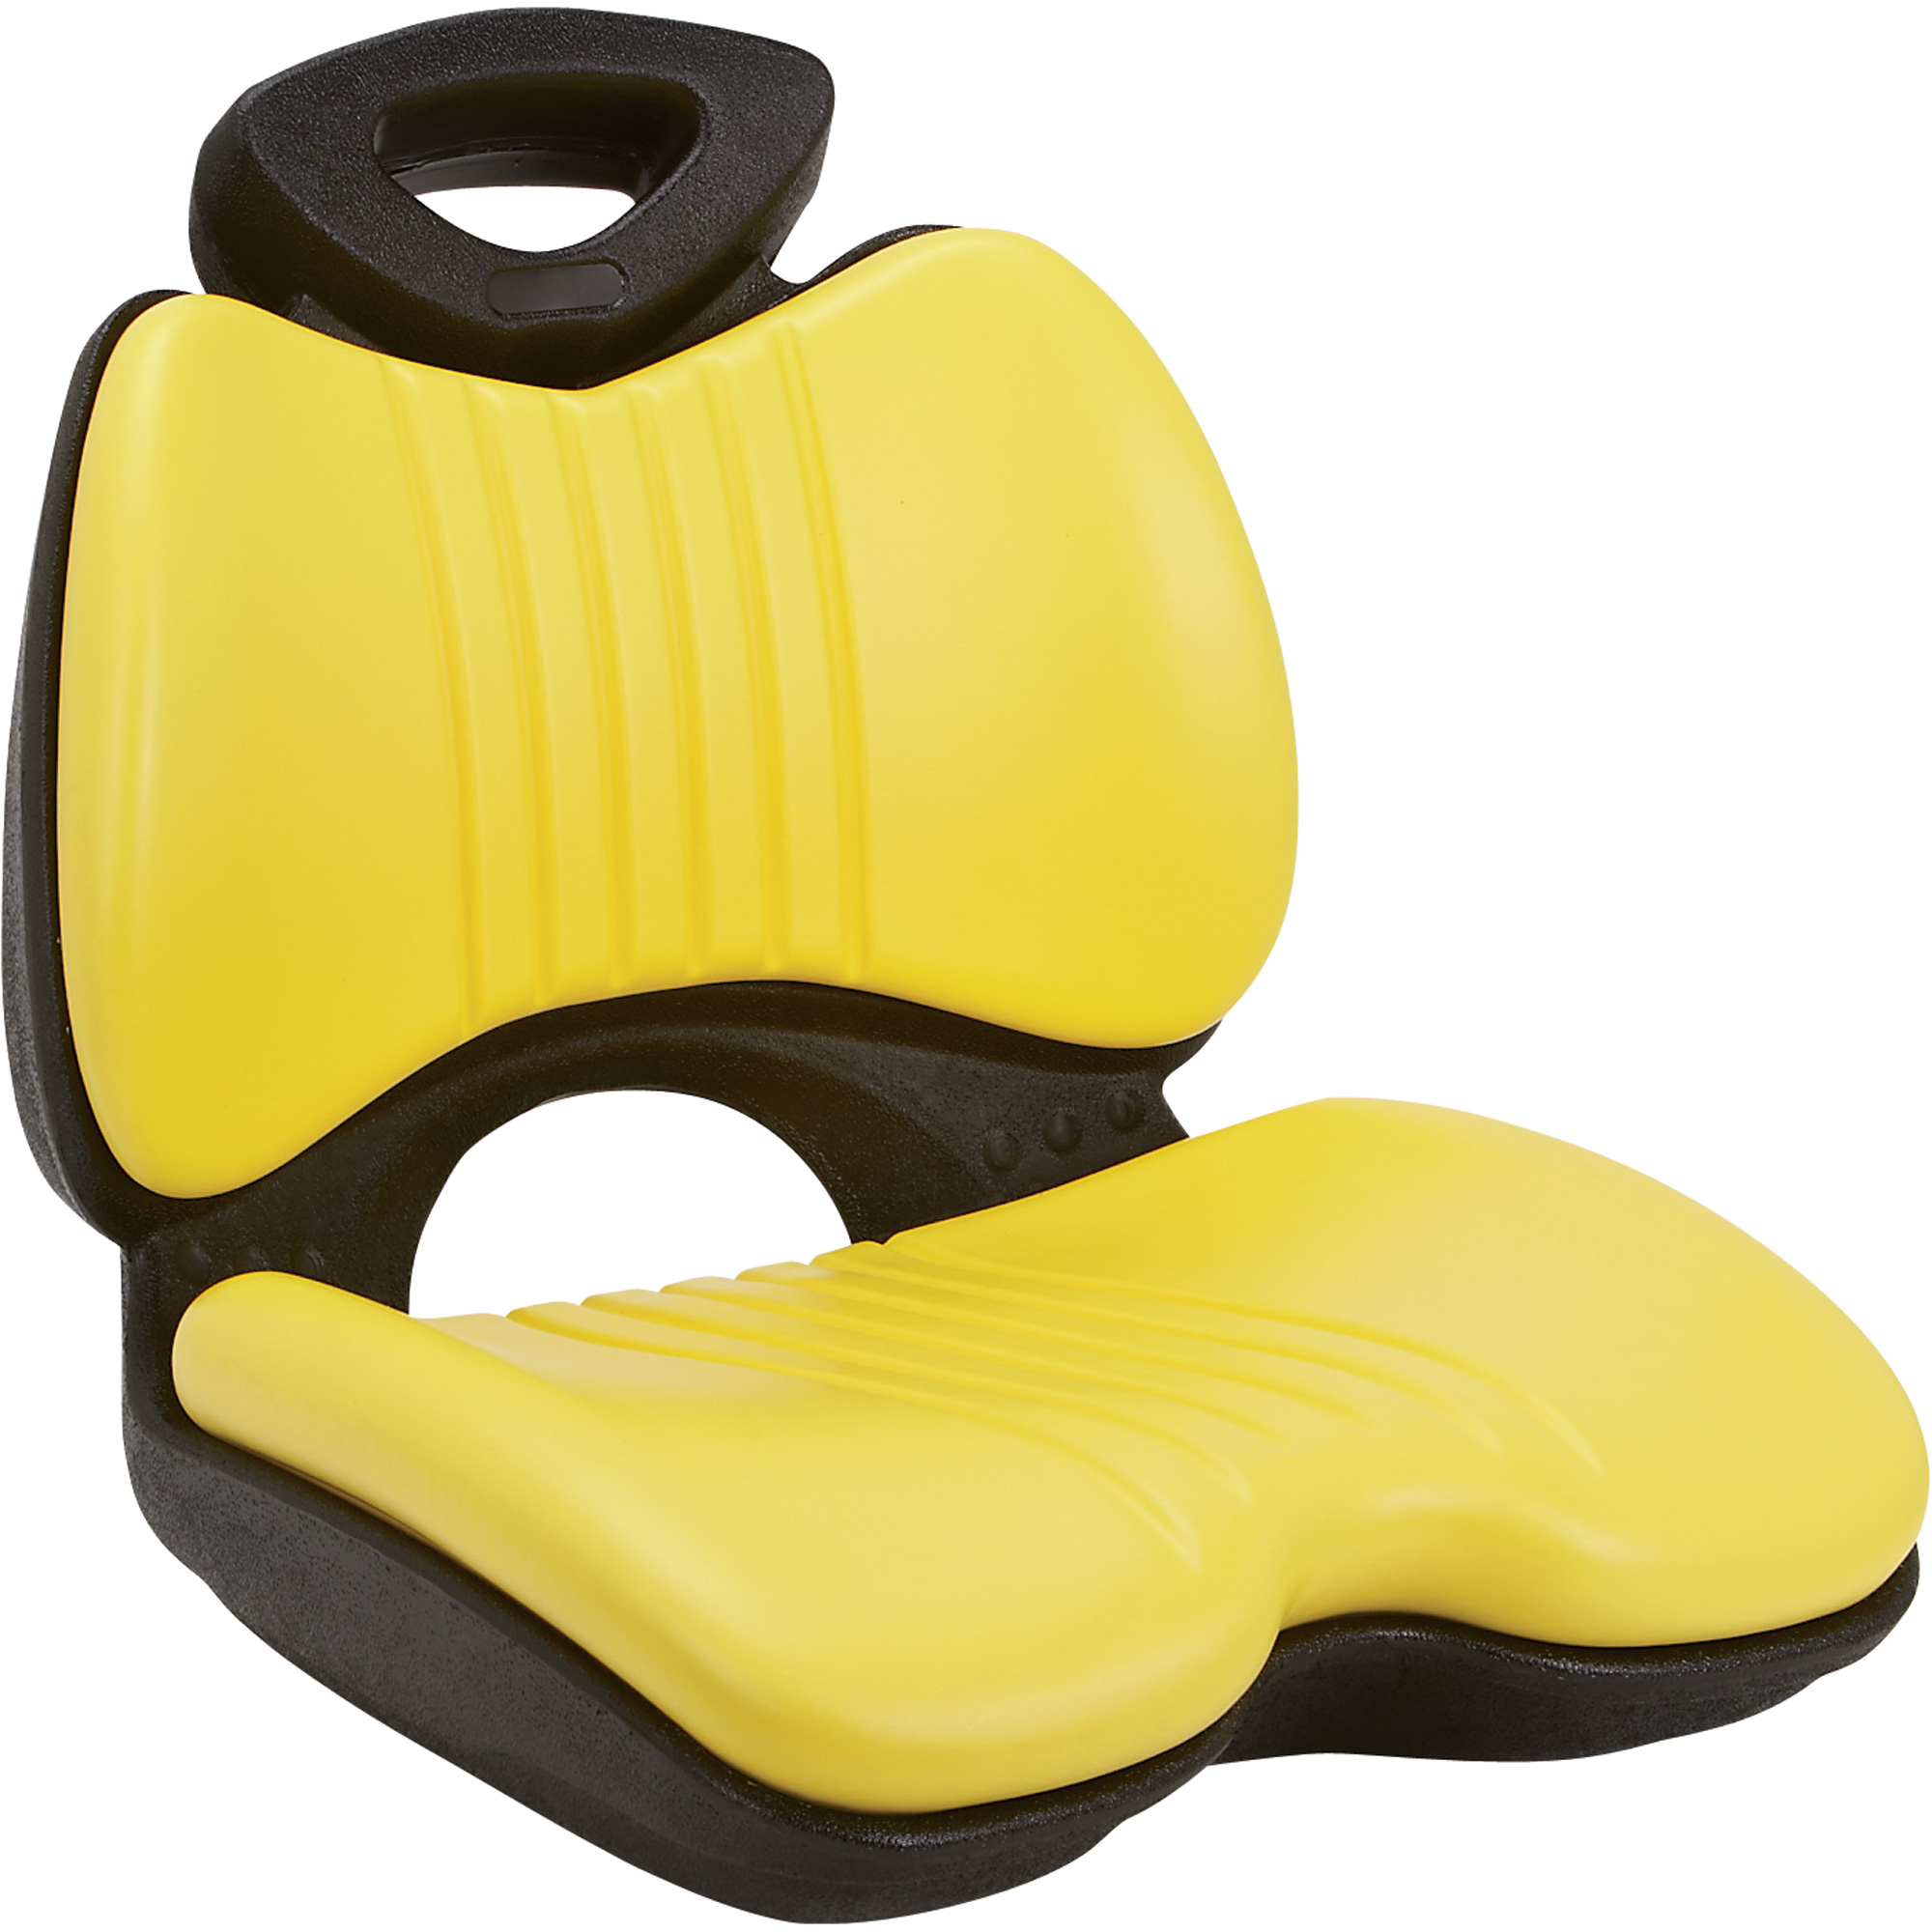 K And M Tractor Seats : K m comfort formed lawn garden tractor seat — yellow